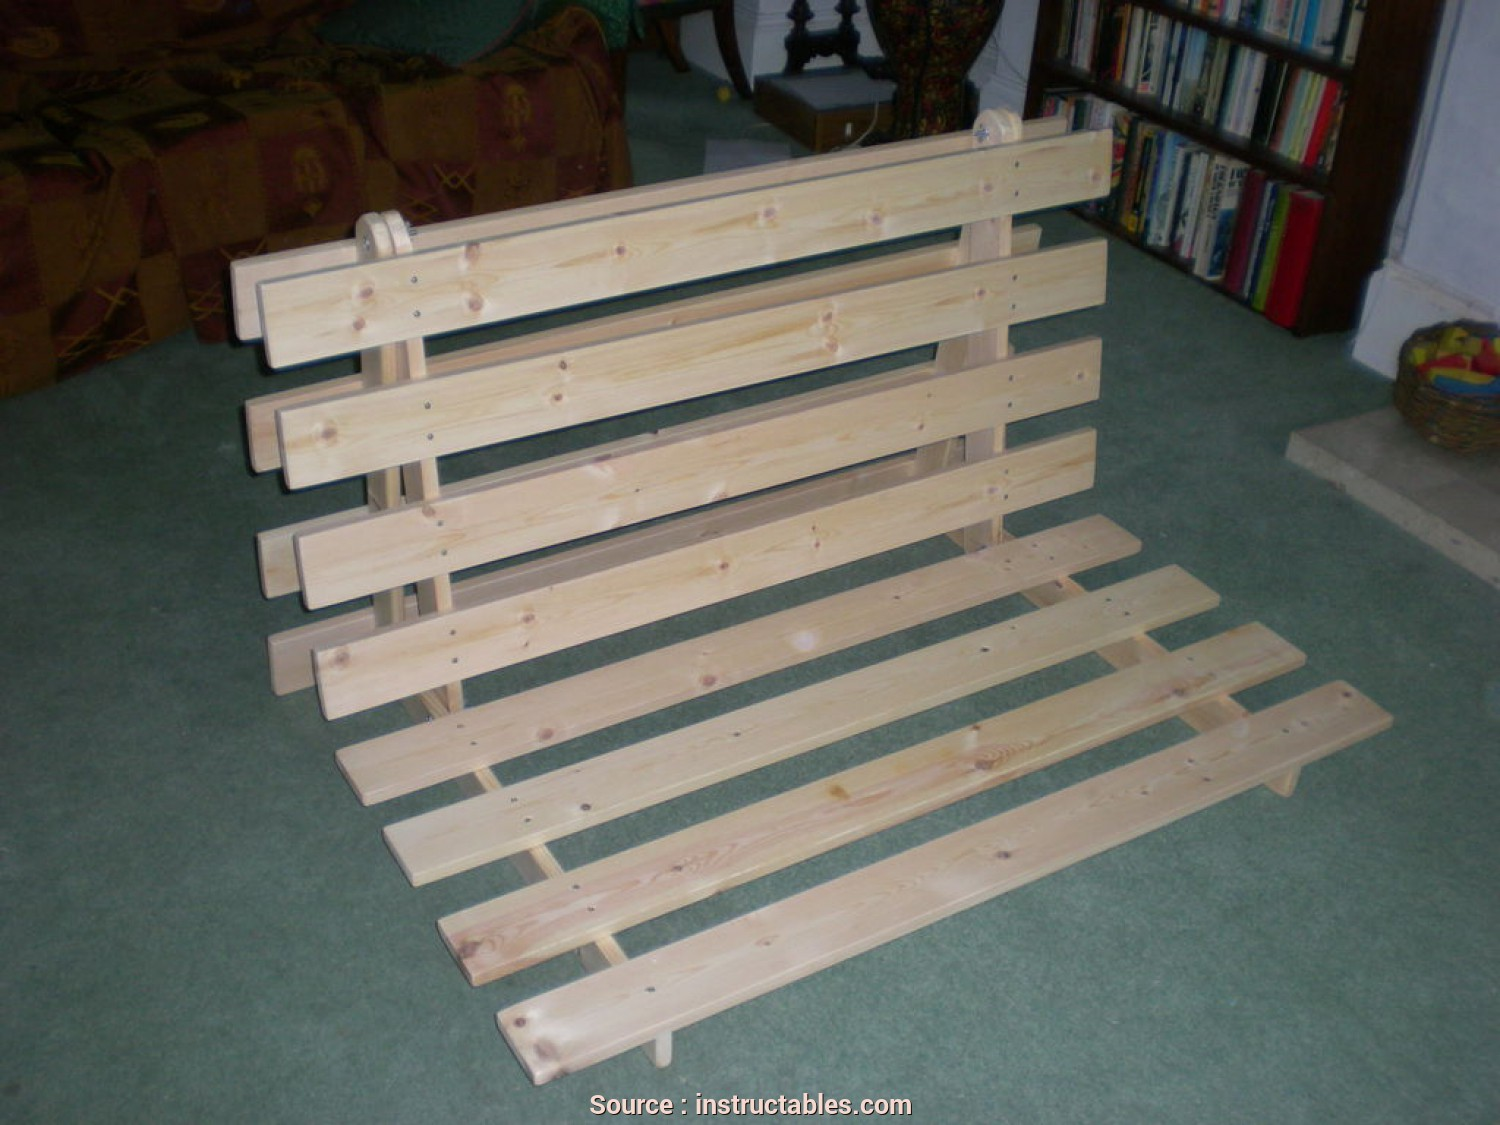 Ikea Wooden Futon Assembly Instructions, Sbalorditivo How To Make A Fold, Sofa/Futon/Bed Frame: 14 Steps (With Pictures)